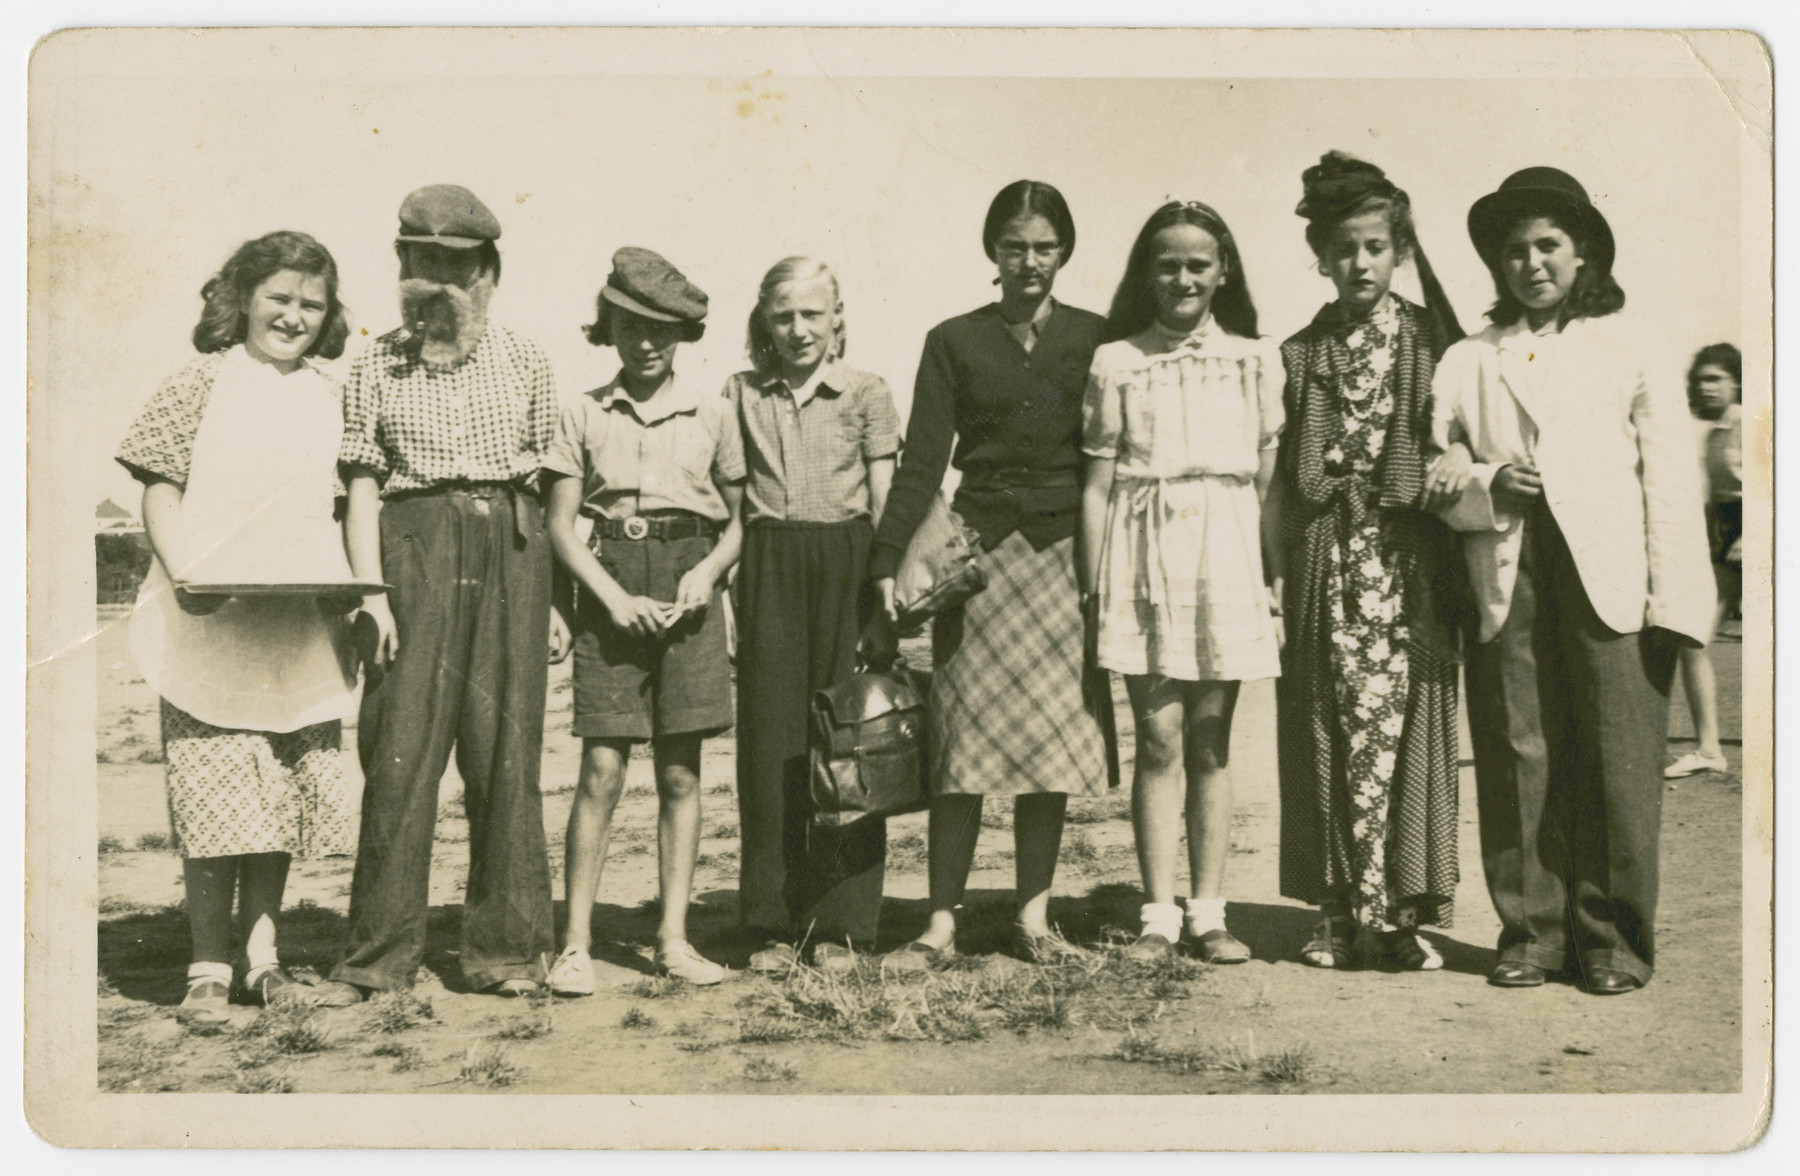 Group portrait of Jewish children in their Purim costumes [probably in the Ben Shemen agricultural school].  Miriam Wertheimer is pictured on the right.